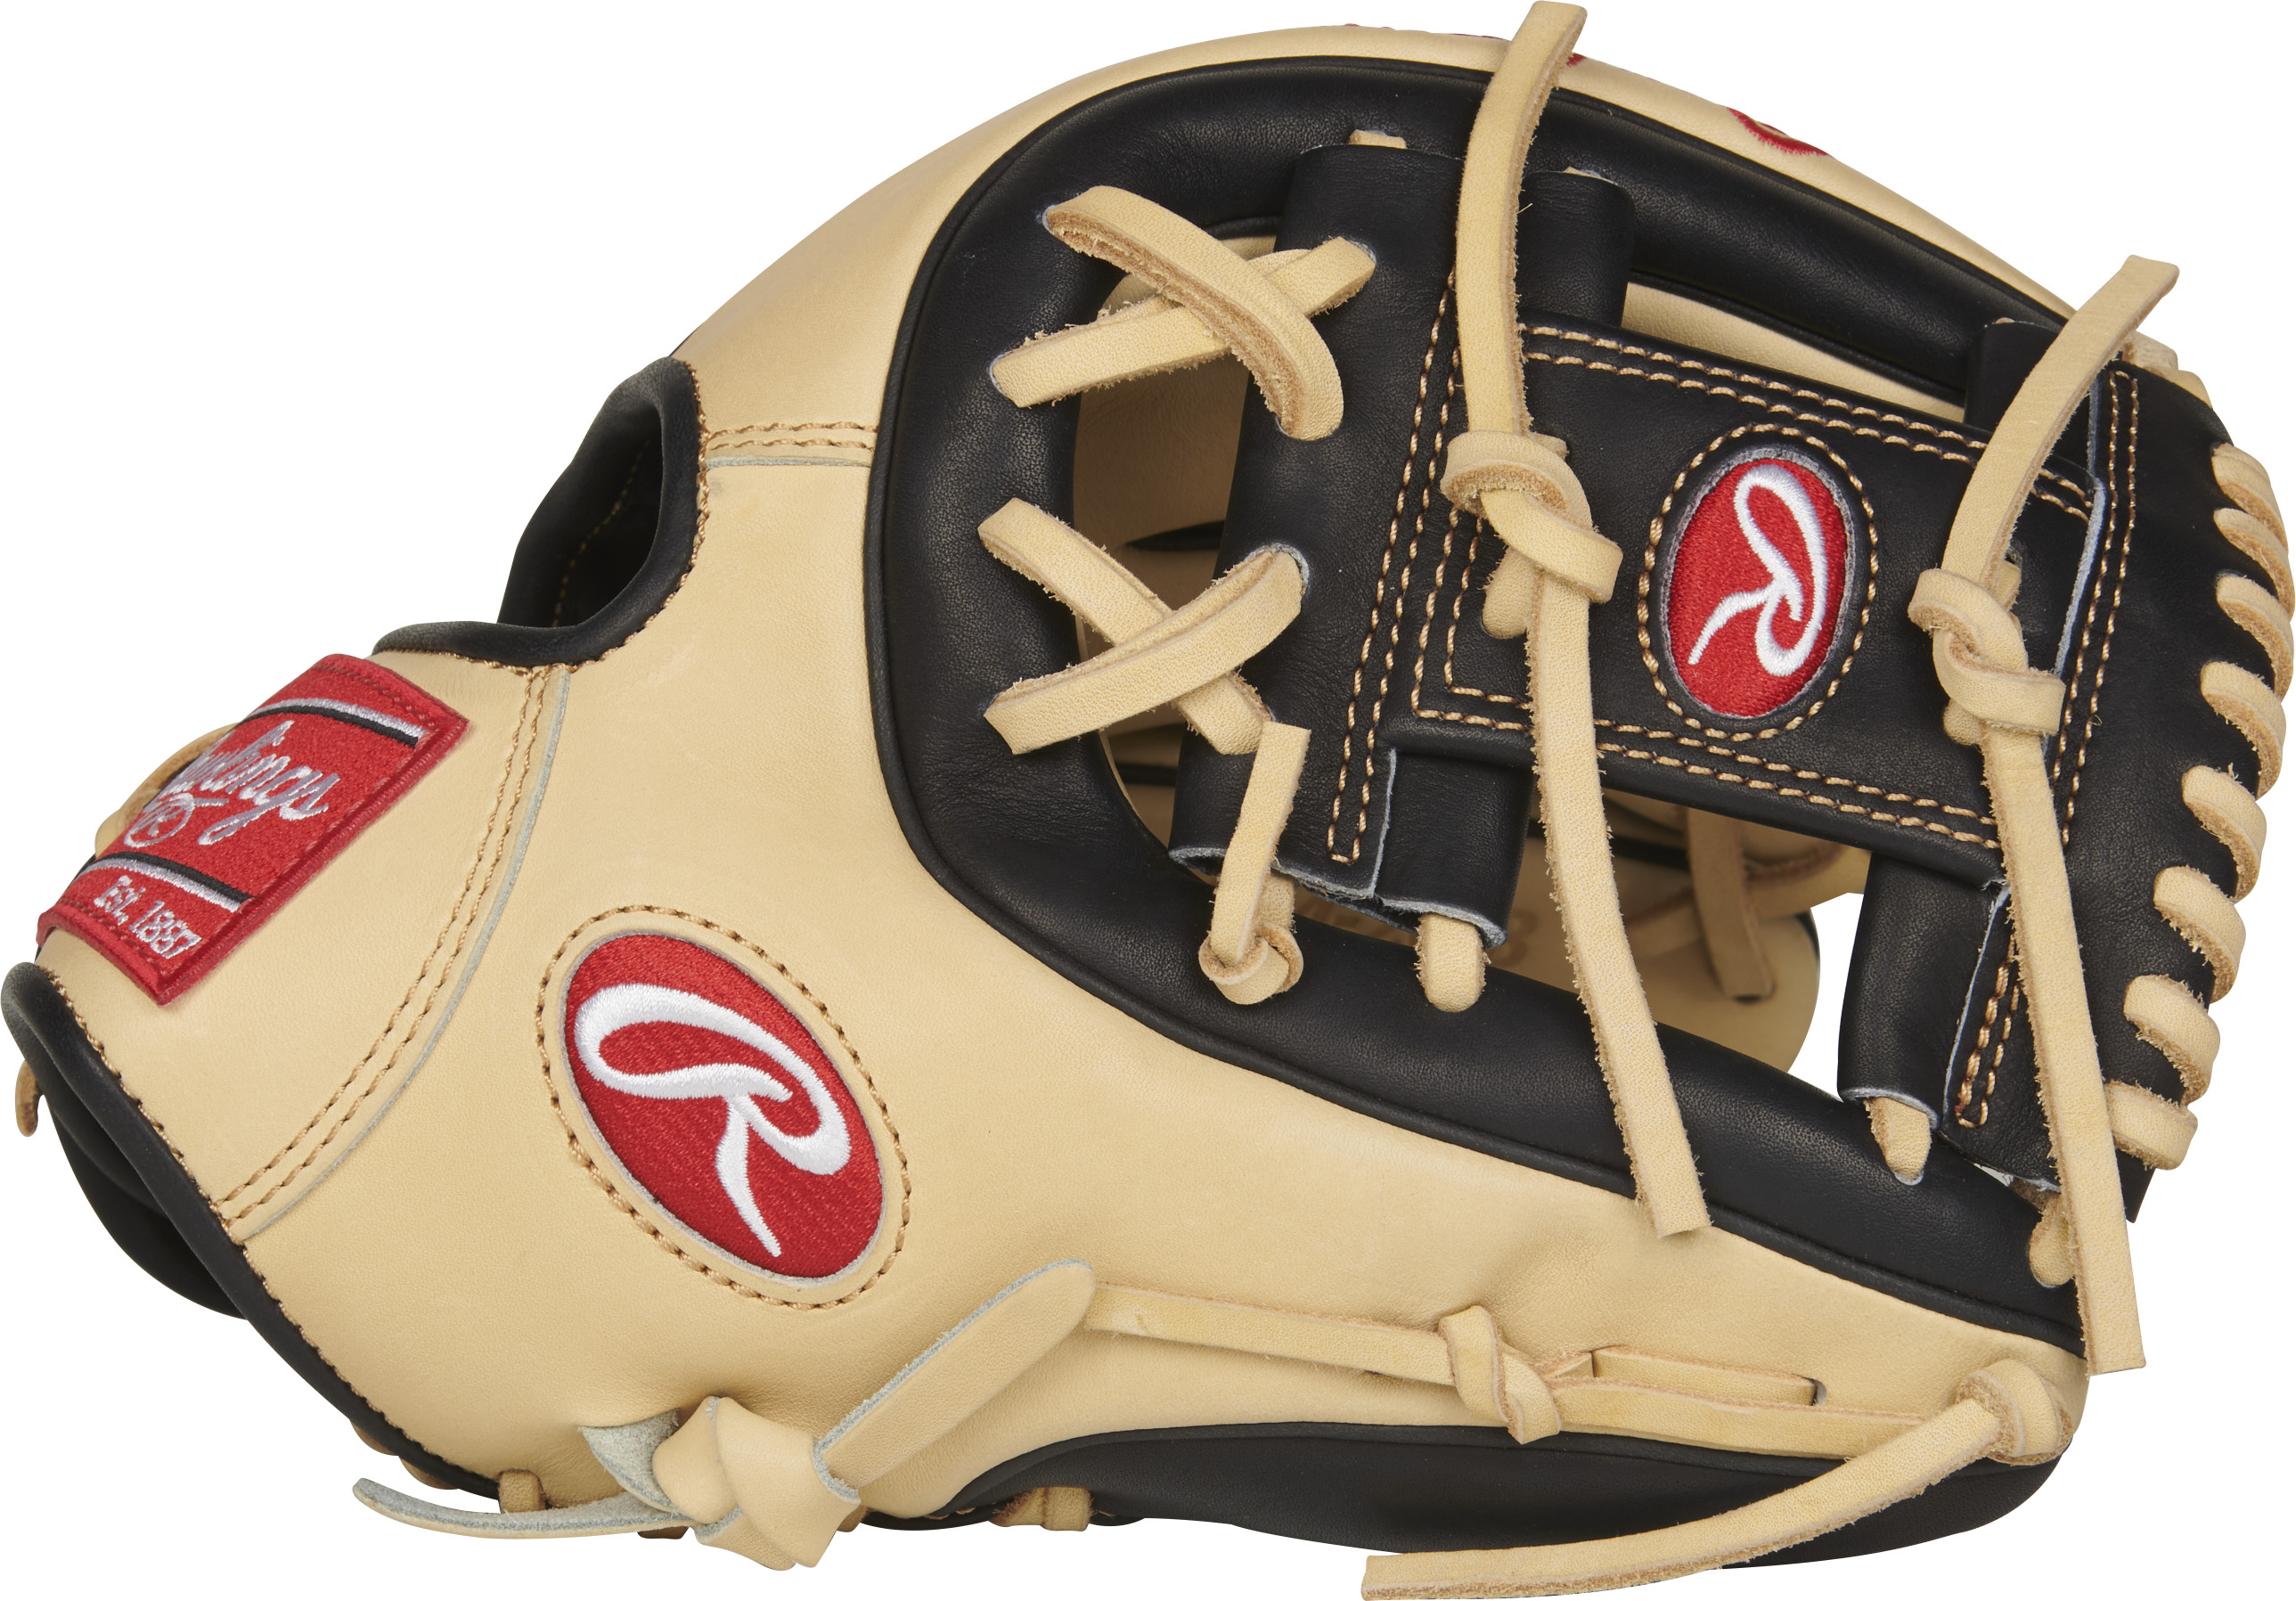 http://www.bestbatdeals.com/images/gloves/rawlings/PRO314-2CB-3.jpg